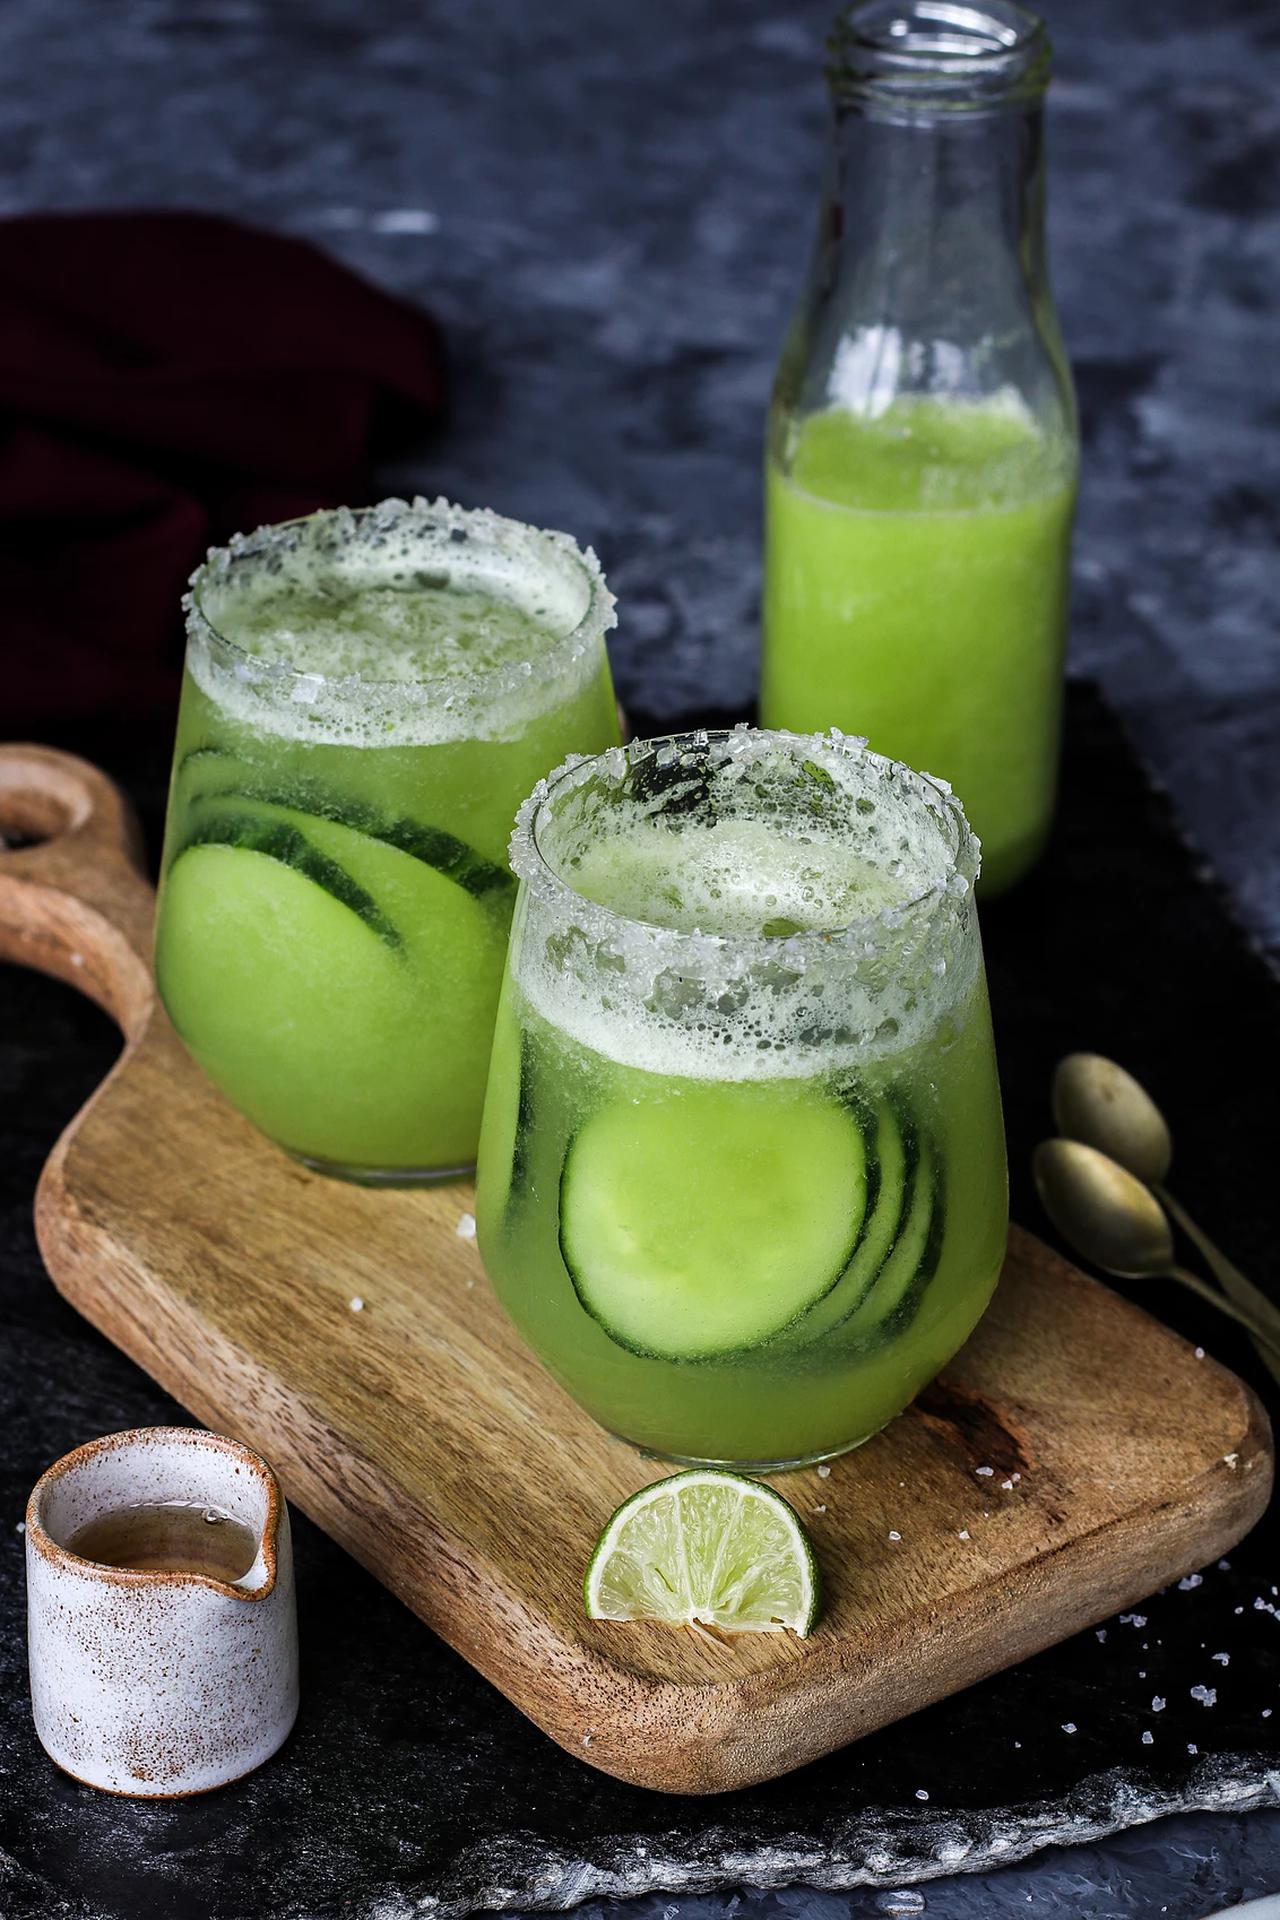 Main image of Refreshing Melon Cucumber Soda